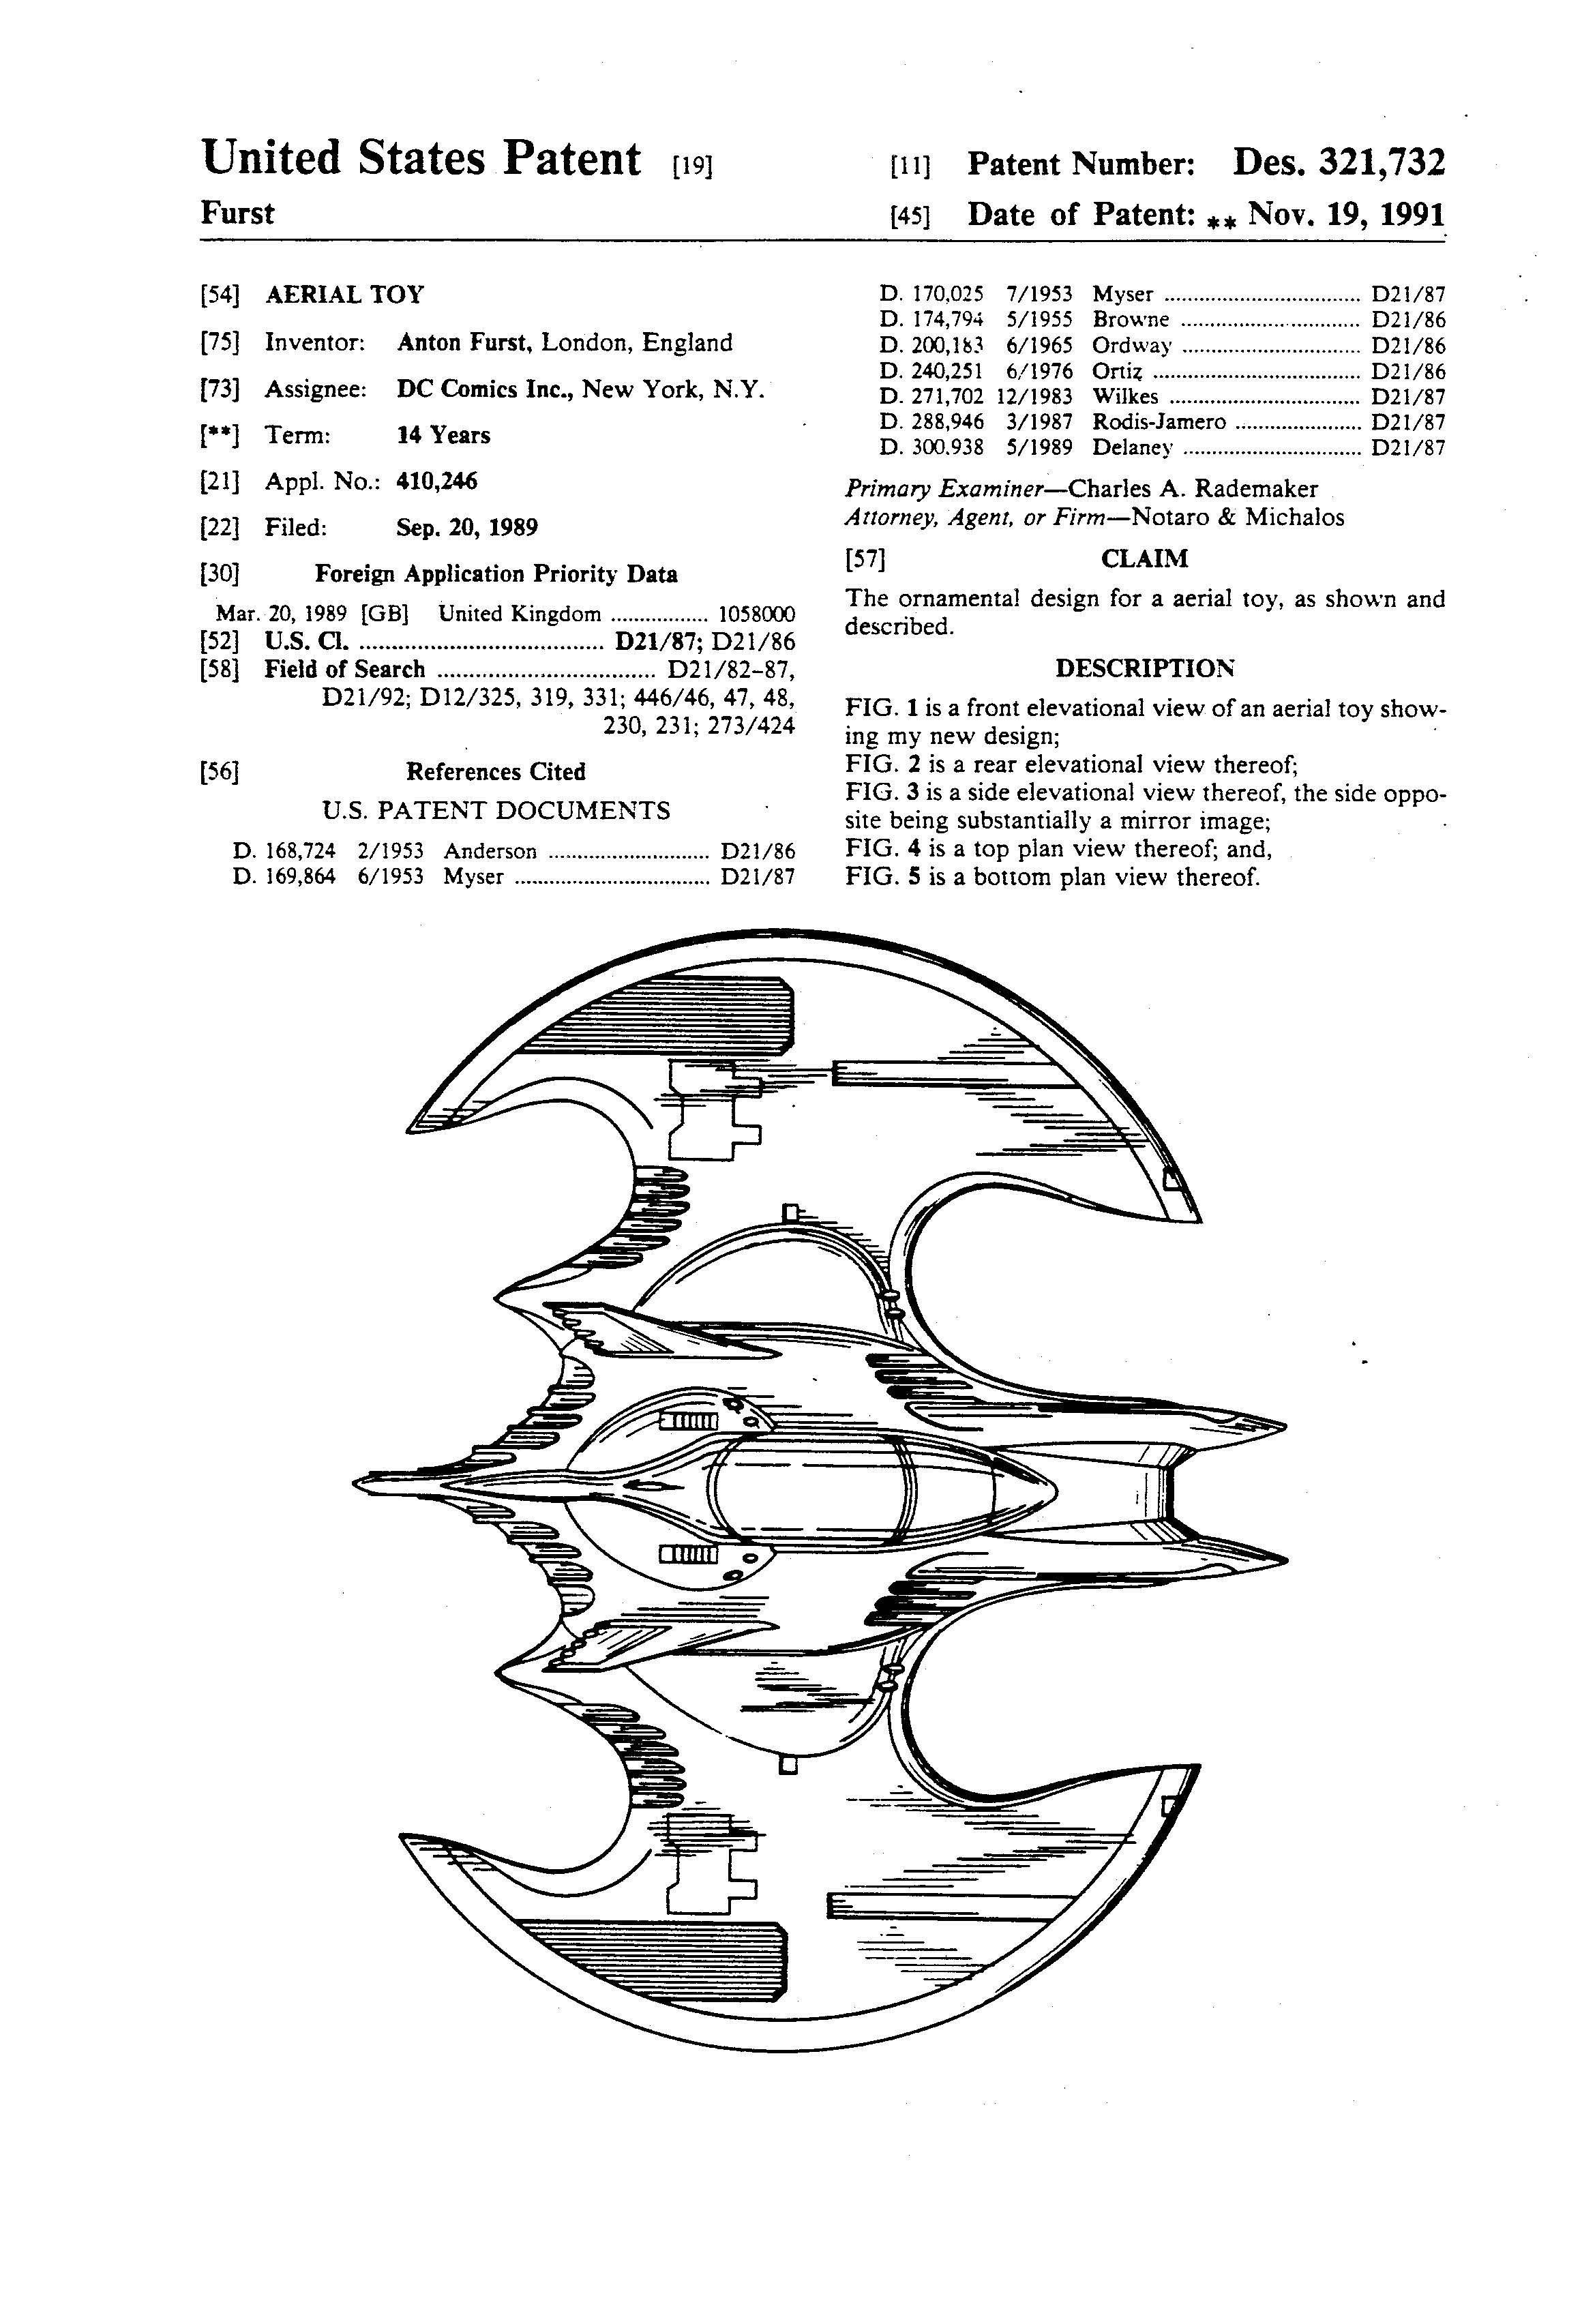 Patents of the Day: Vehicle and Aerial Toy (Batmobile and